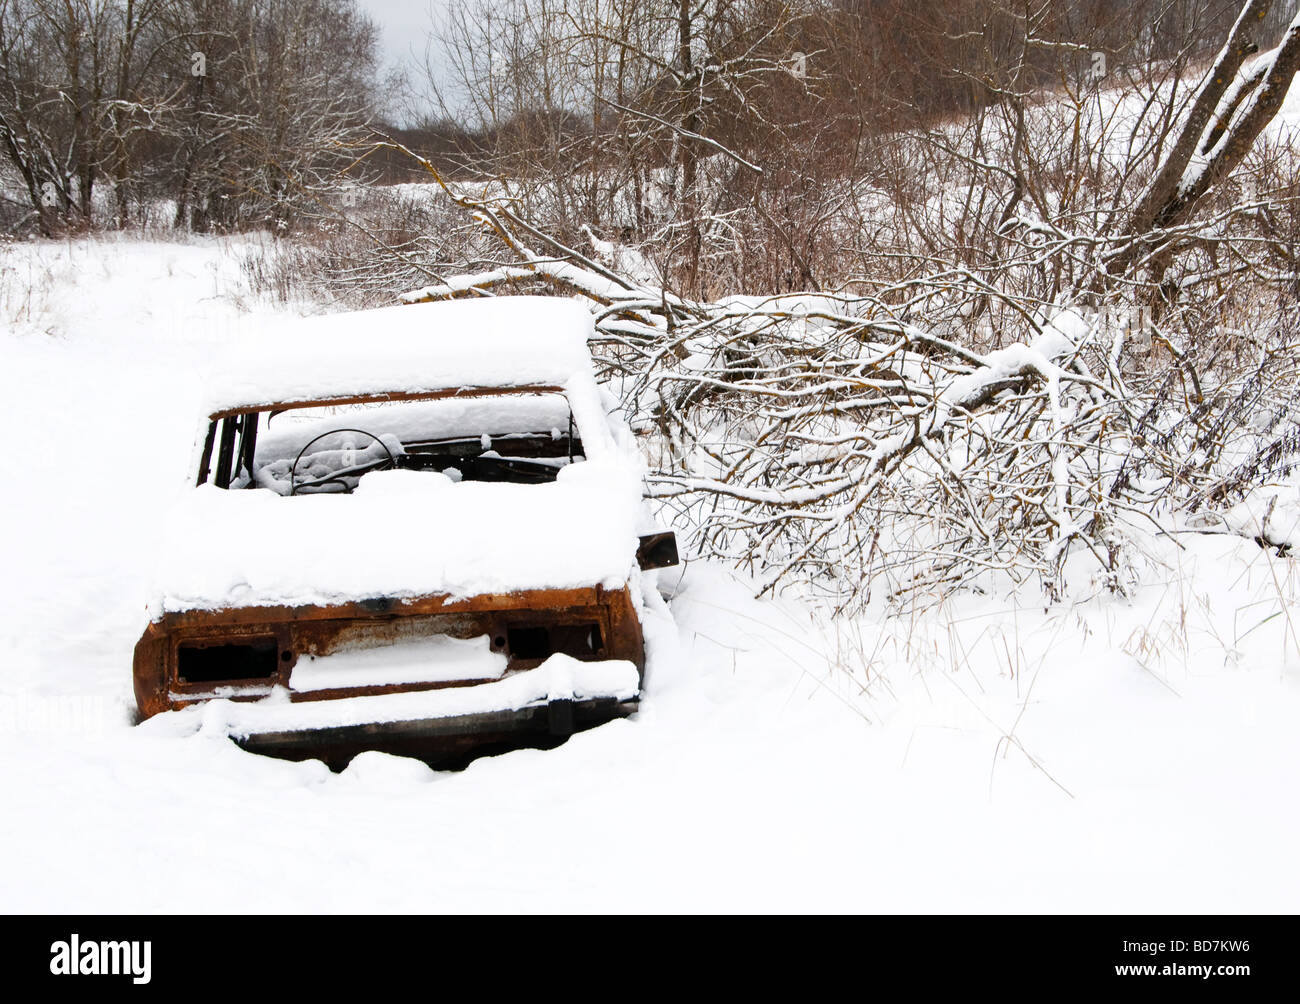 Deserted car, Leningrad region, Russia - Stock Image